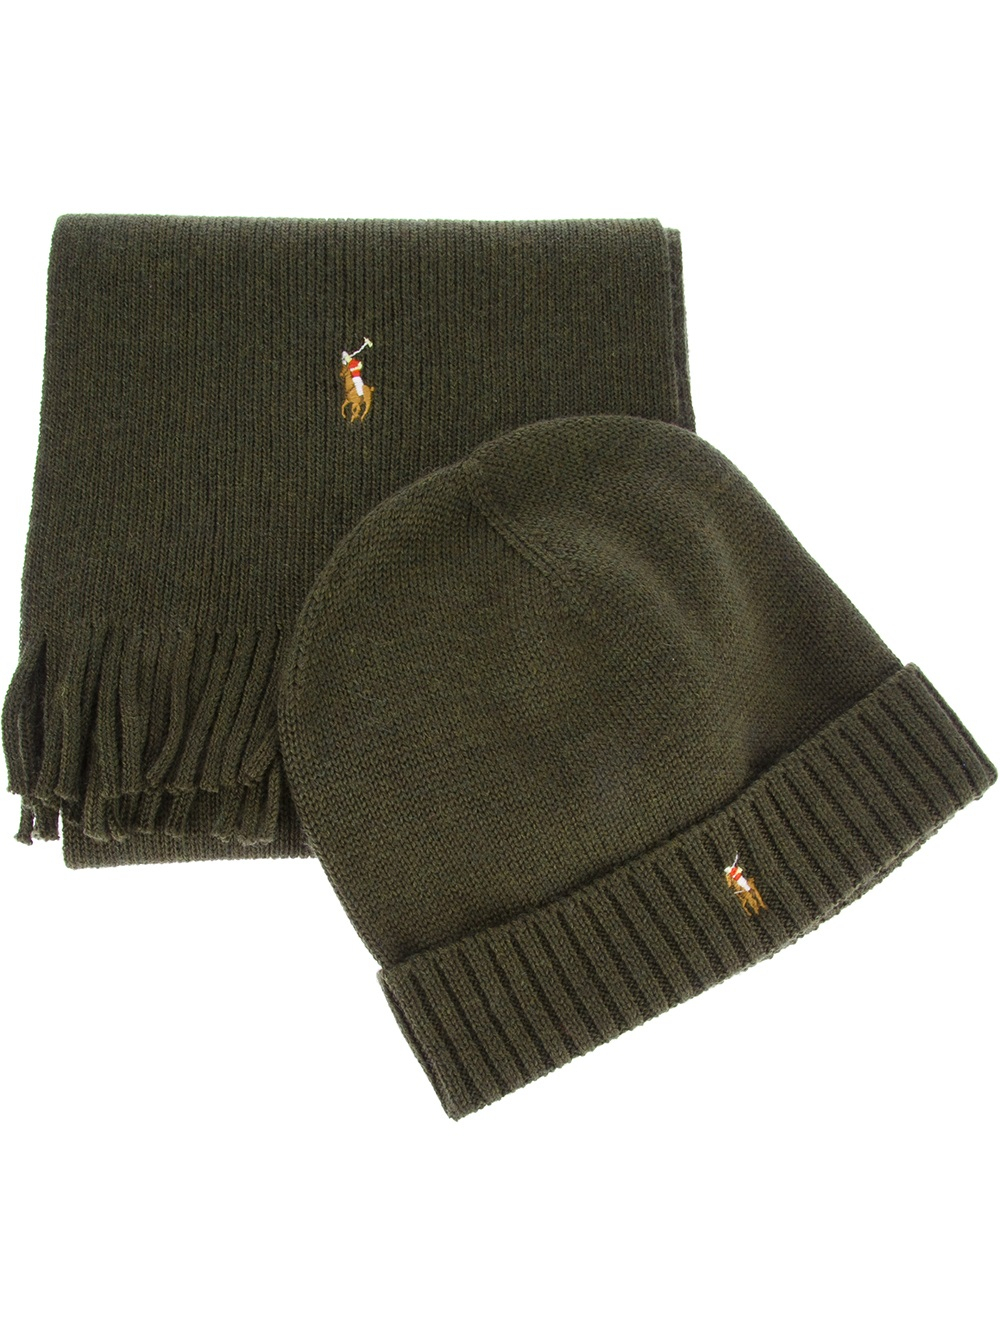 9758ae26295 ... new zealand lyst polo ralph lauren ribbed hat and scarf set in green  for men 4aef4